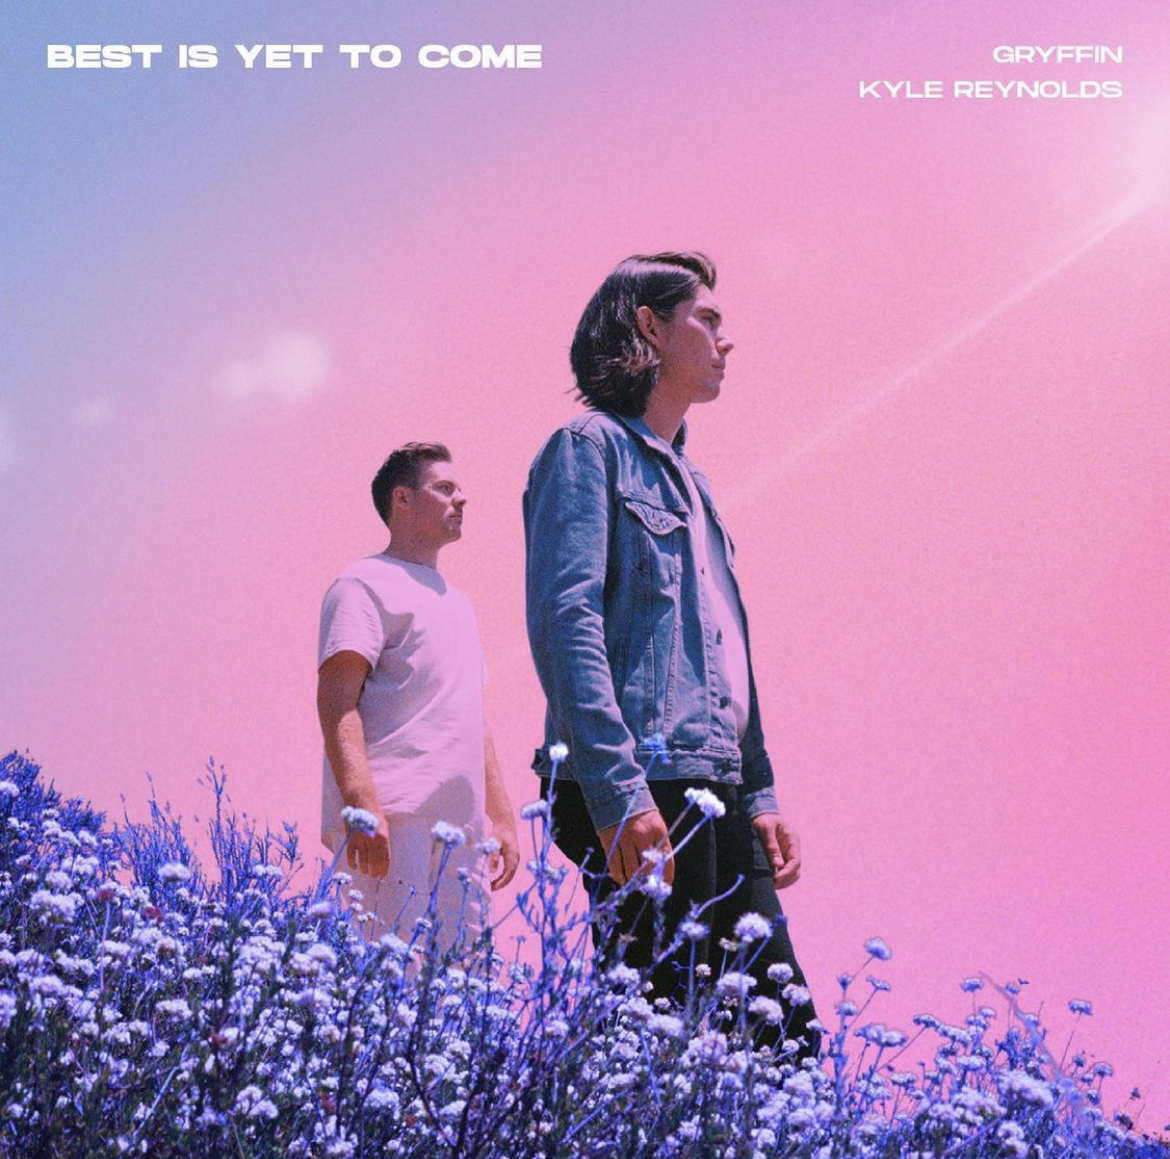 Best Is Yet To Come-[Gryffin] & [Kyle Reynolds]